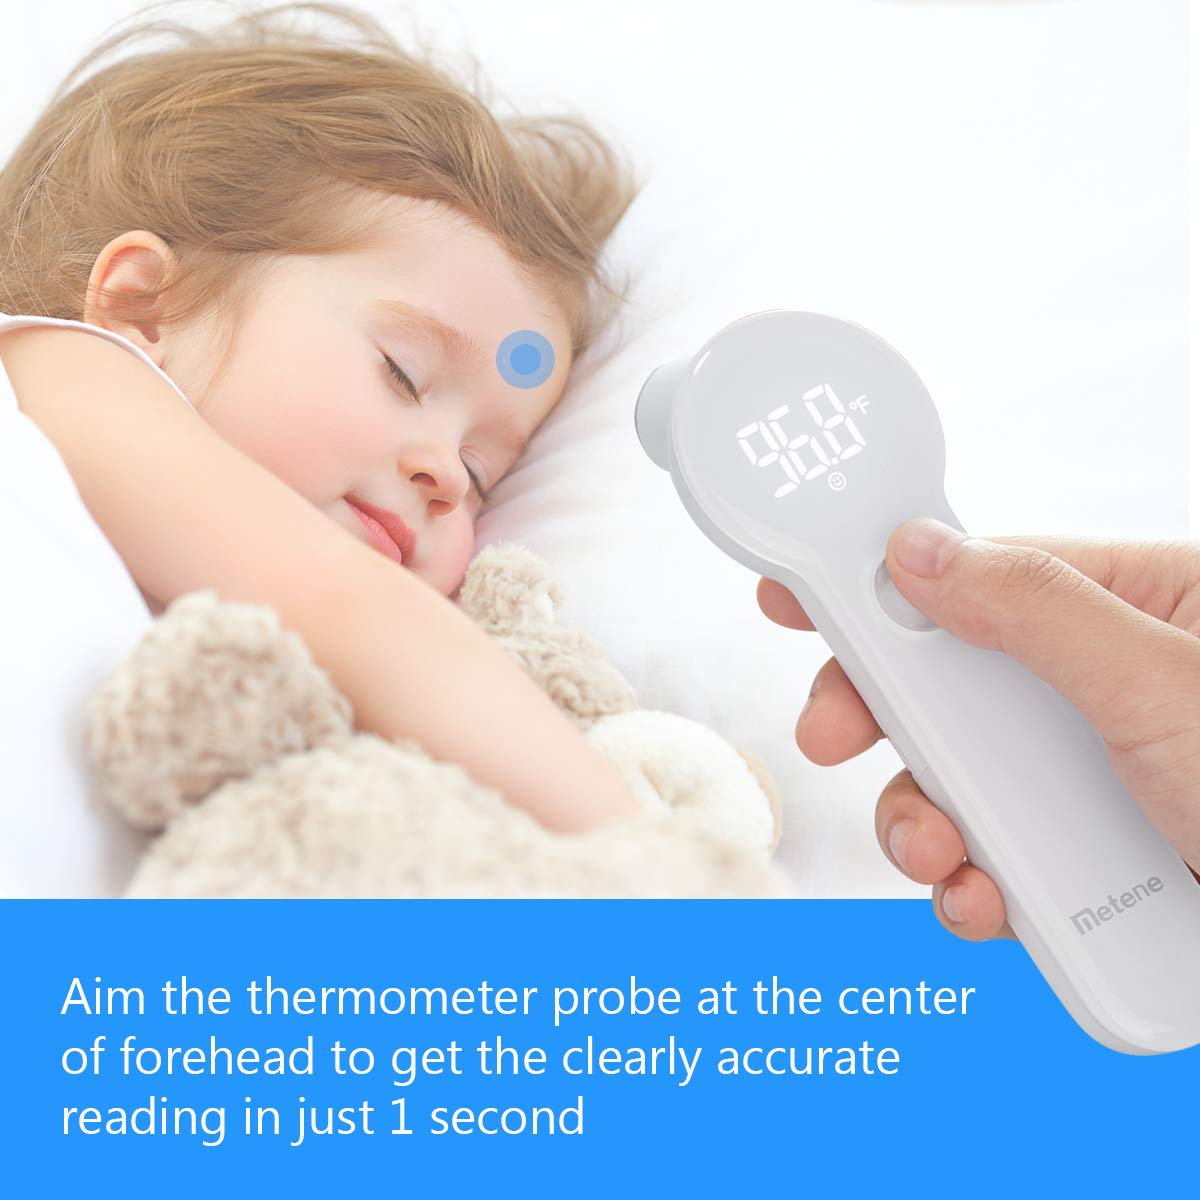 Baby Thermometer For Fever New Professional Digital Medical Forehead and Ear Thermometer,Upgraded thermoelectric Pile Sensor+3 Built-in Sensors for Best Accuracy,Thermometers for Baby Kids and Adults